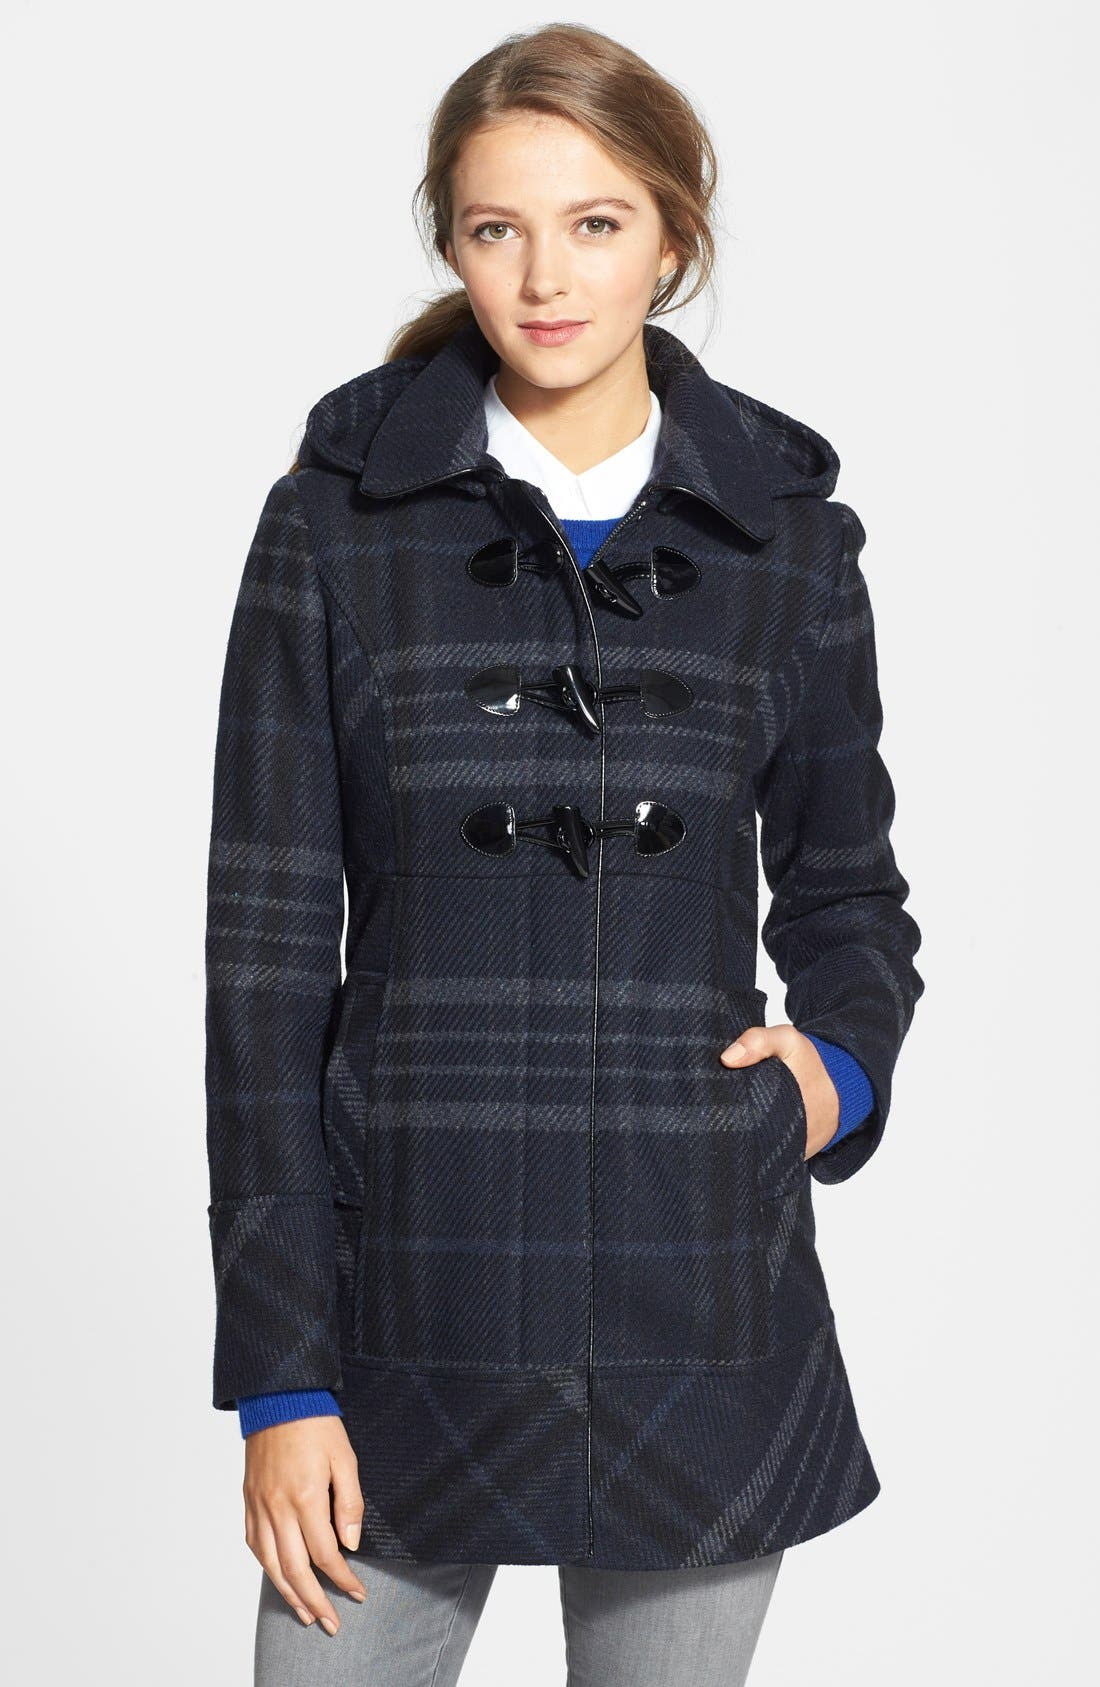 Alternate Image 1 Selected - GUESS Plaid Toggle Front Coat with Removable Hood (Regular & Petite)